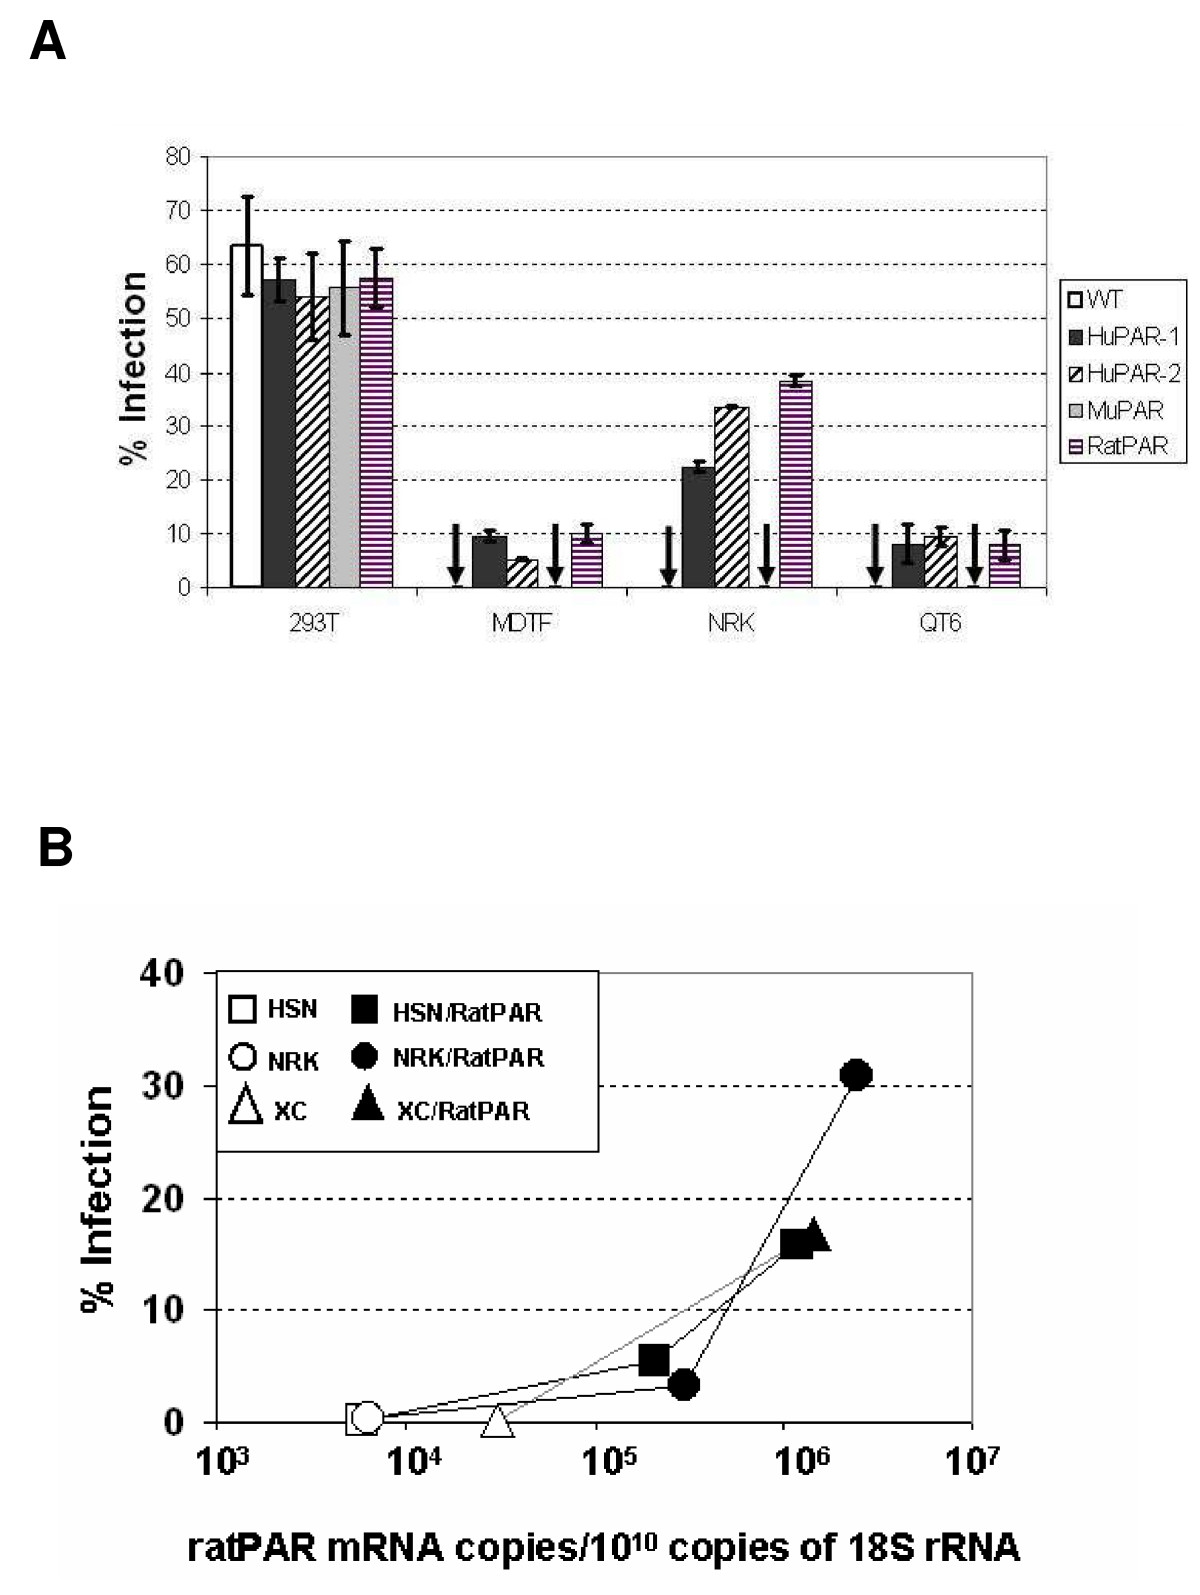 http://static-content.springer.com/image/art%3A10.1186%2F1742-4690-4-93/MediaObjects/12977_2007_Article_822_Fig1_HTML.jpg